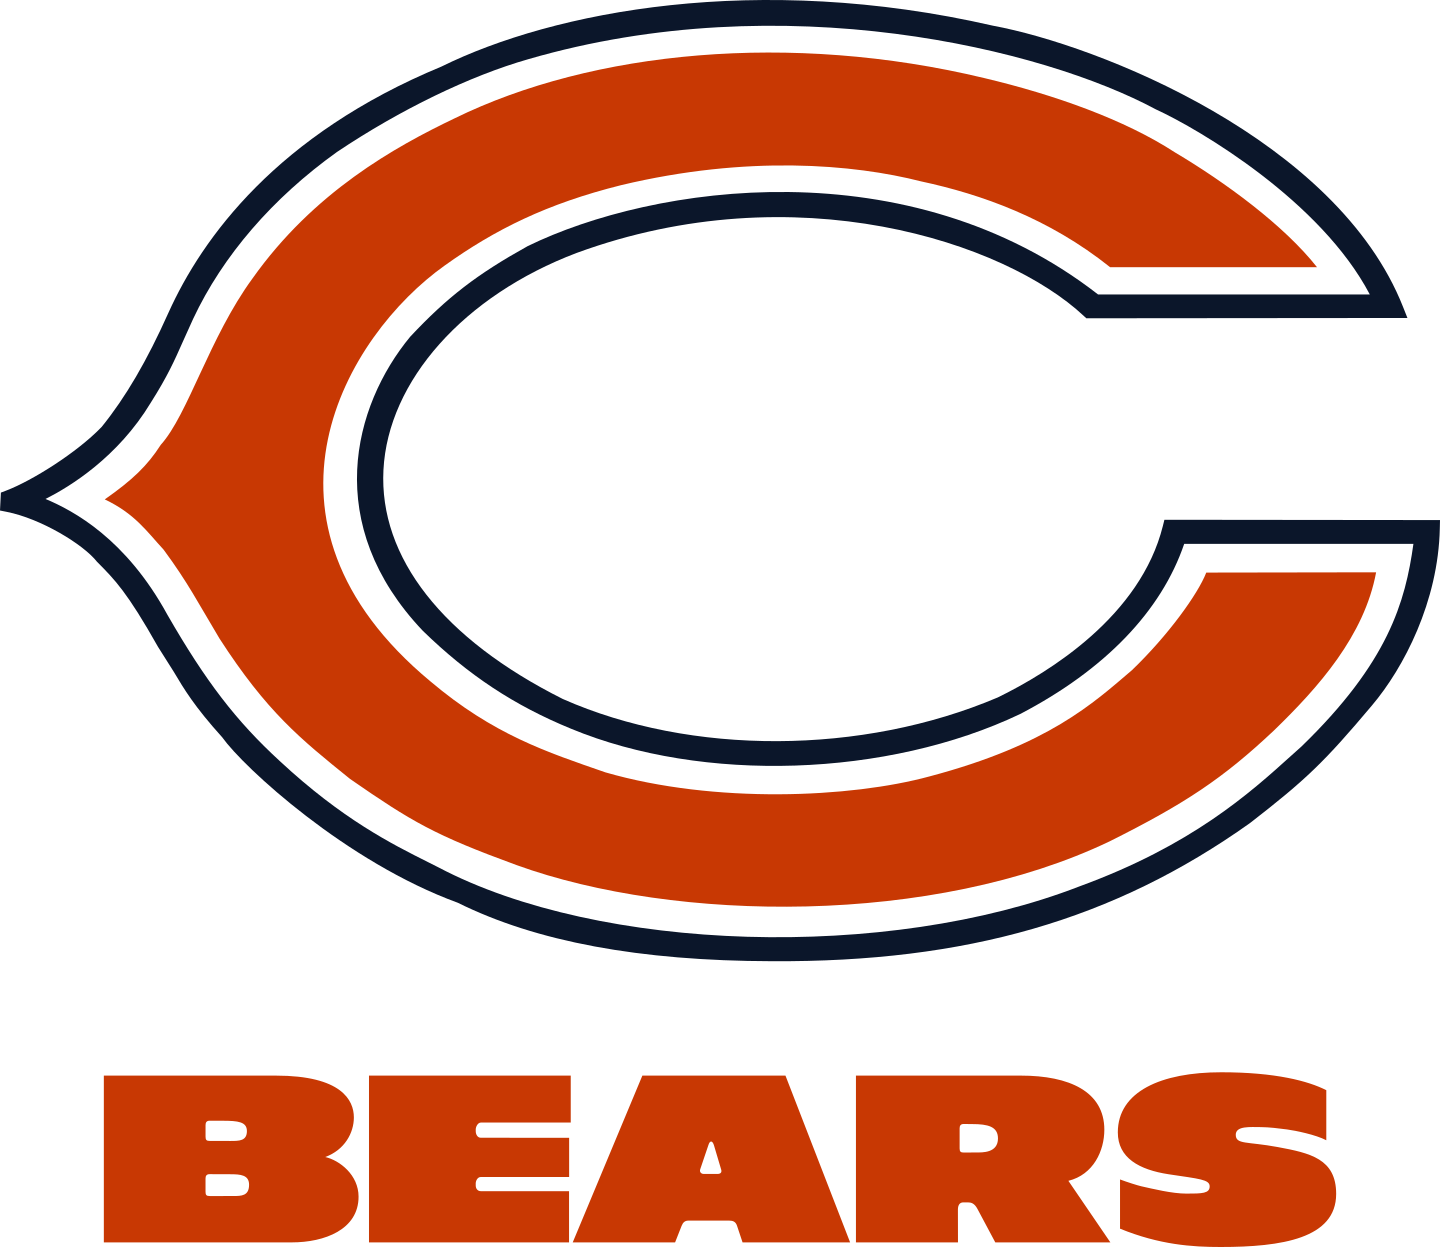 chicago bears logo 2 - Chicago Bears Logo